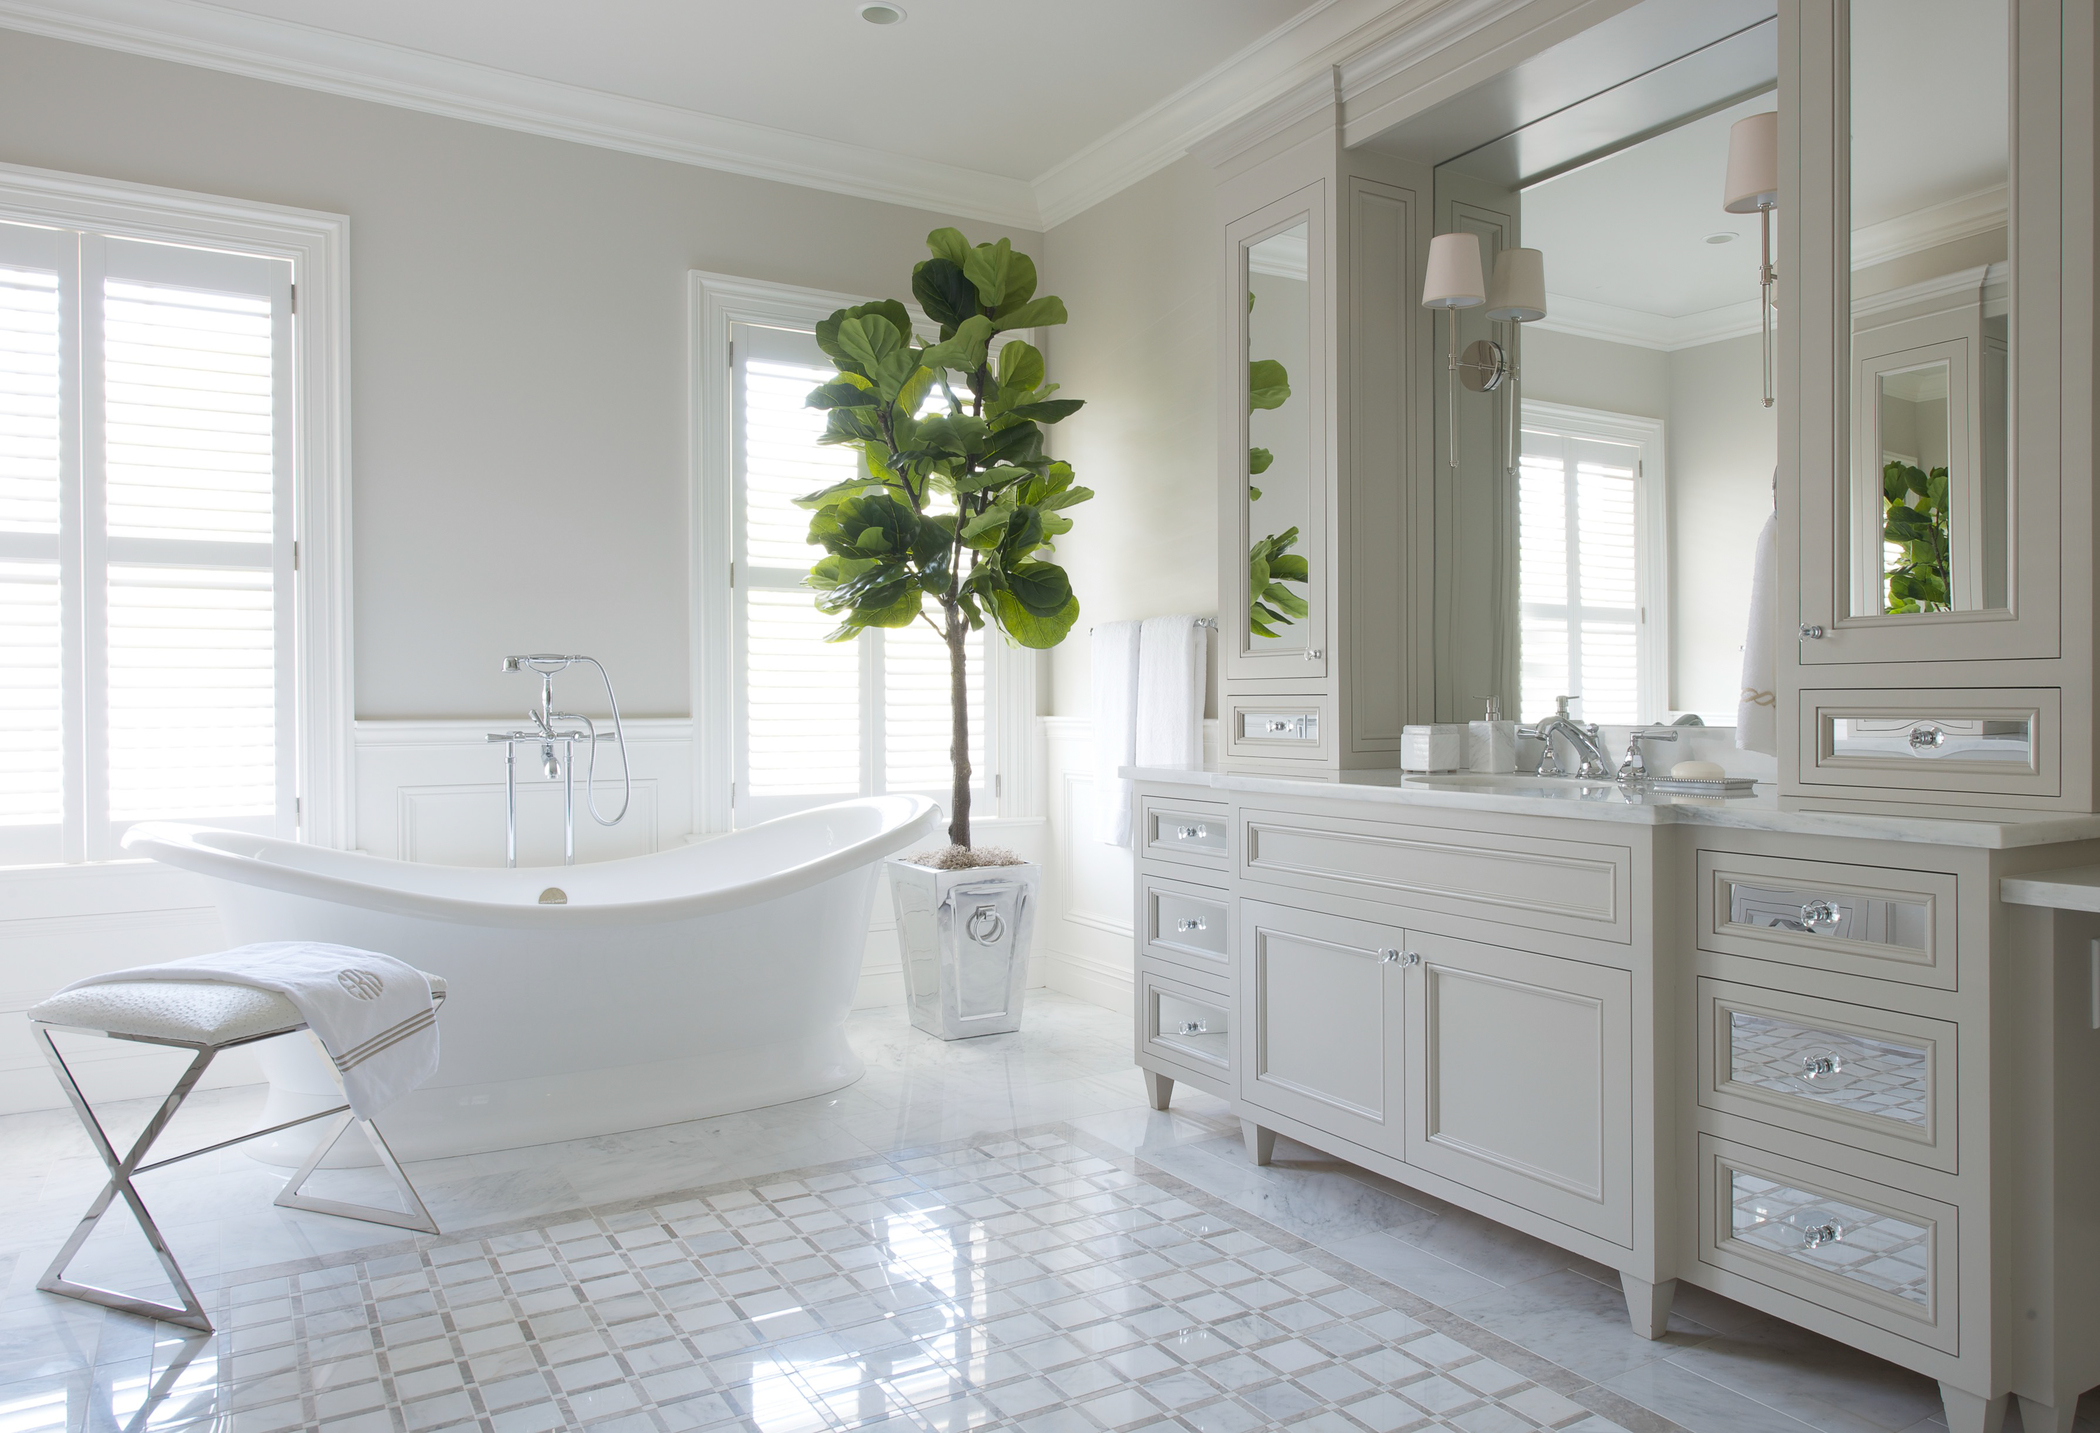 ROHL Designer Open Call Winners Announced | ROHL Faucets & Fixtures ...